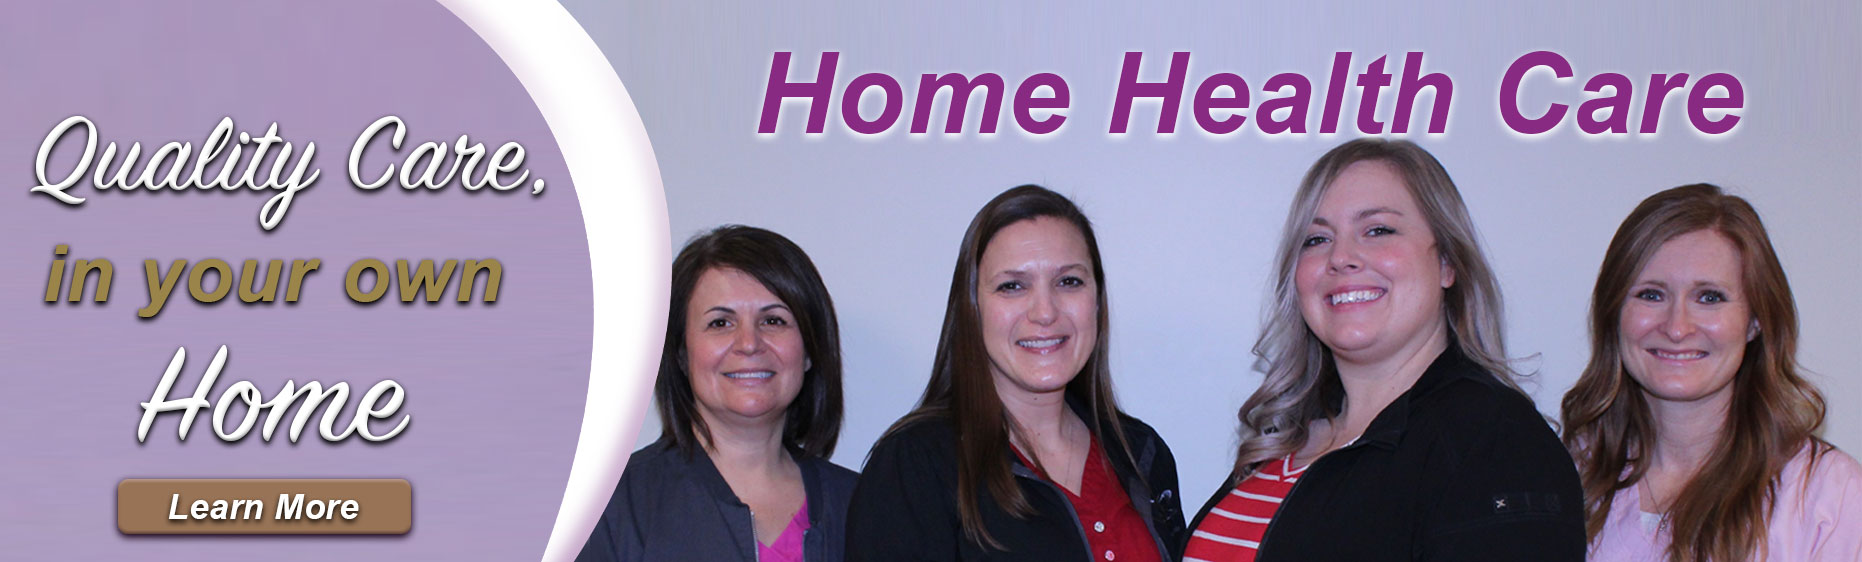 Quality Care in your own home. Learn More. Home Health Care.